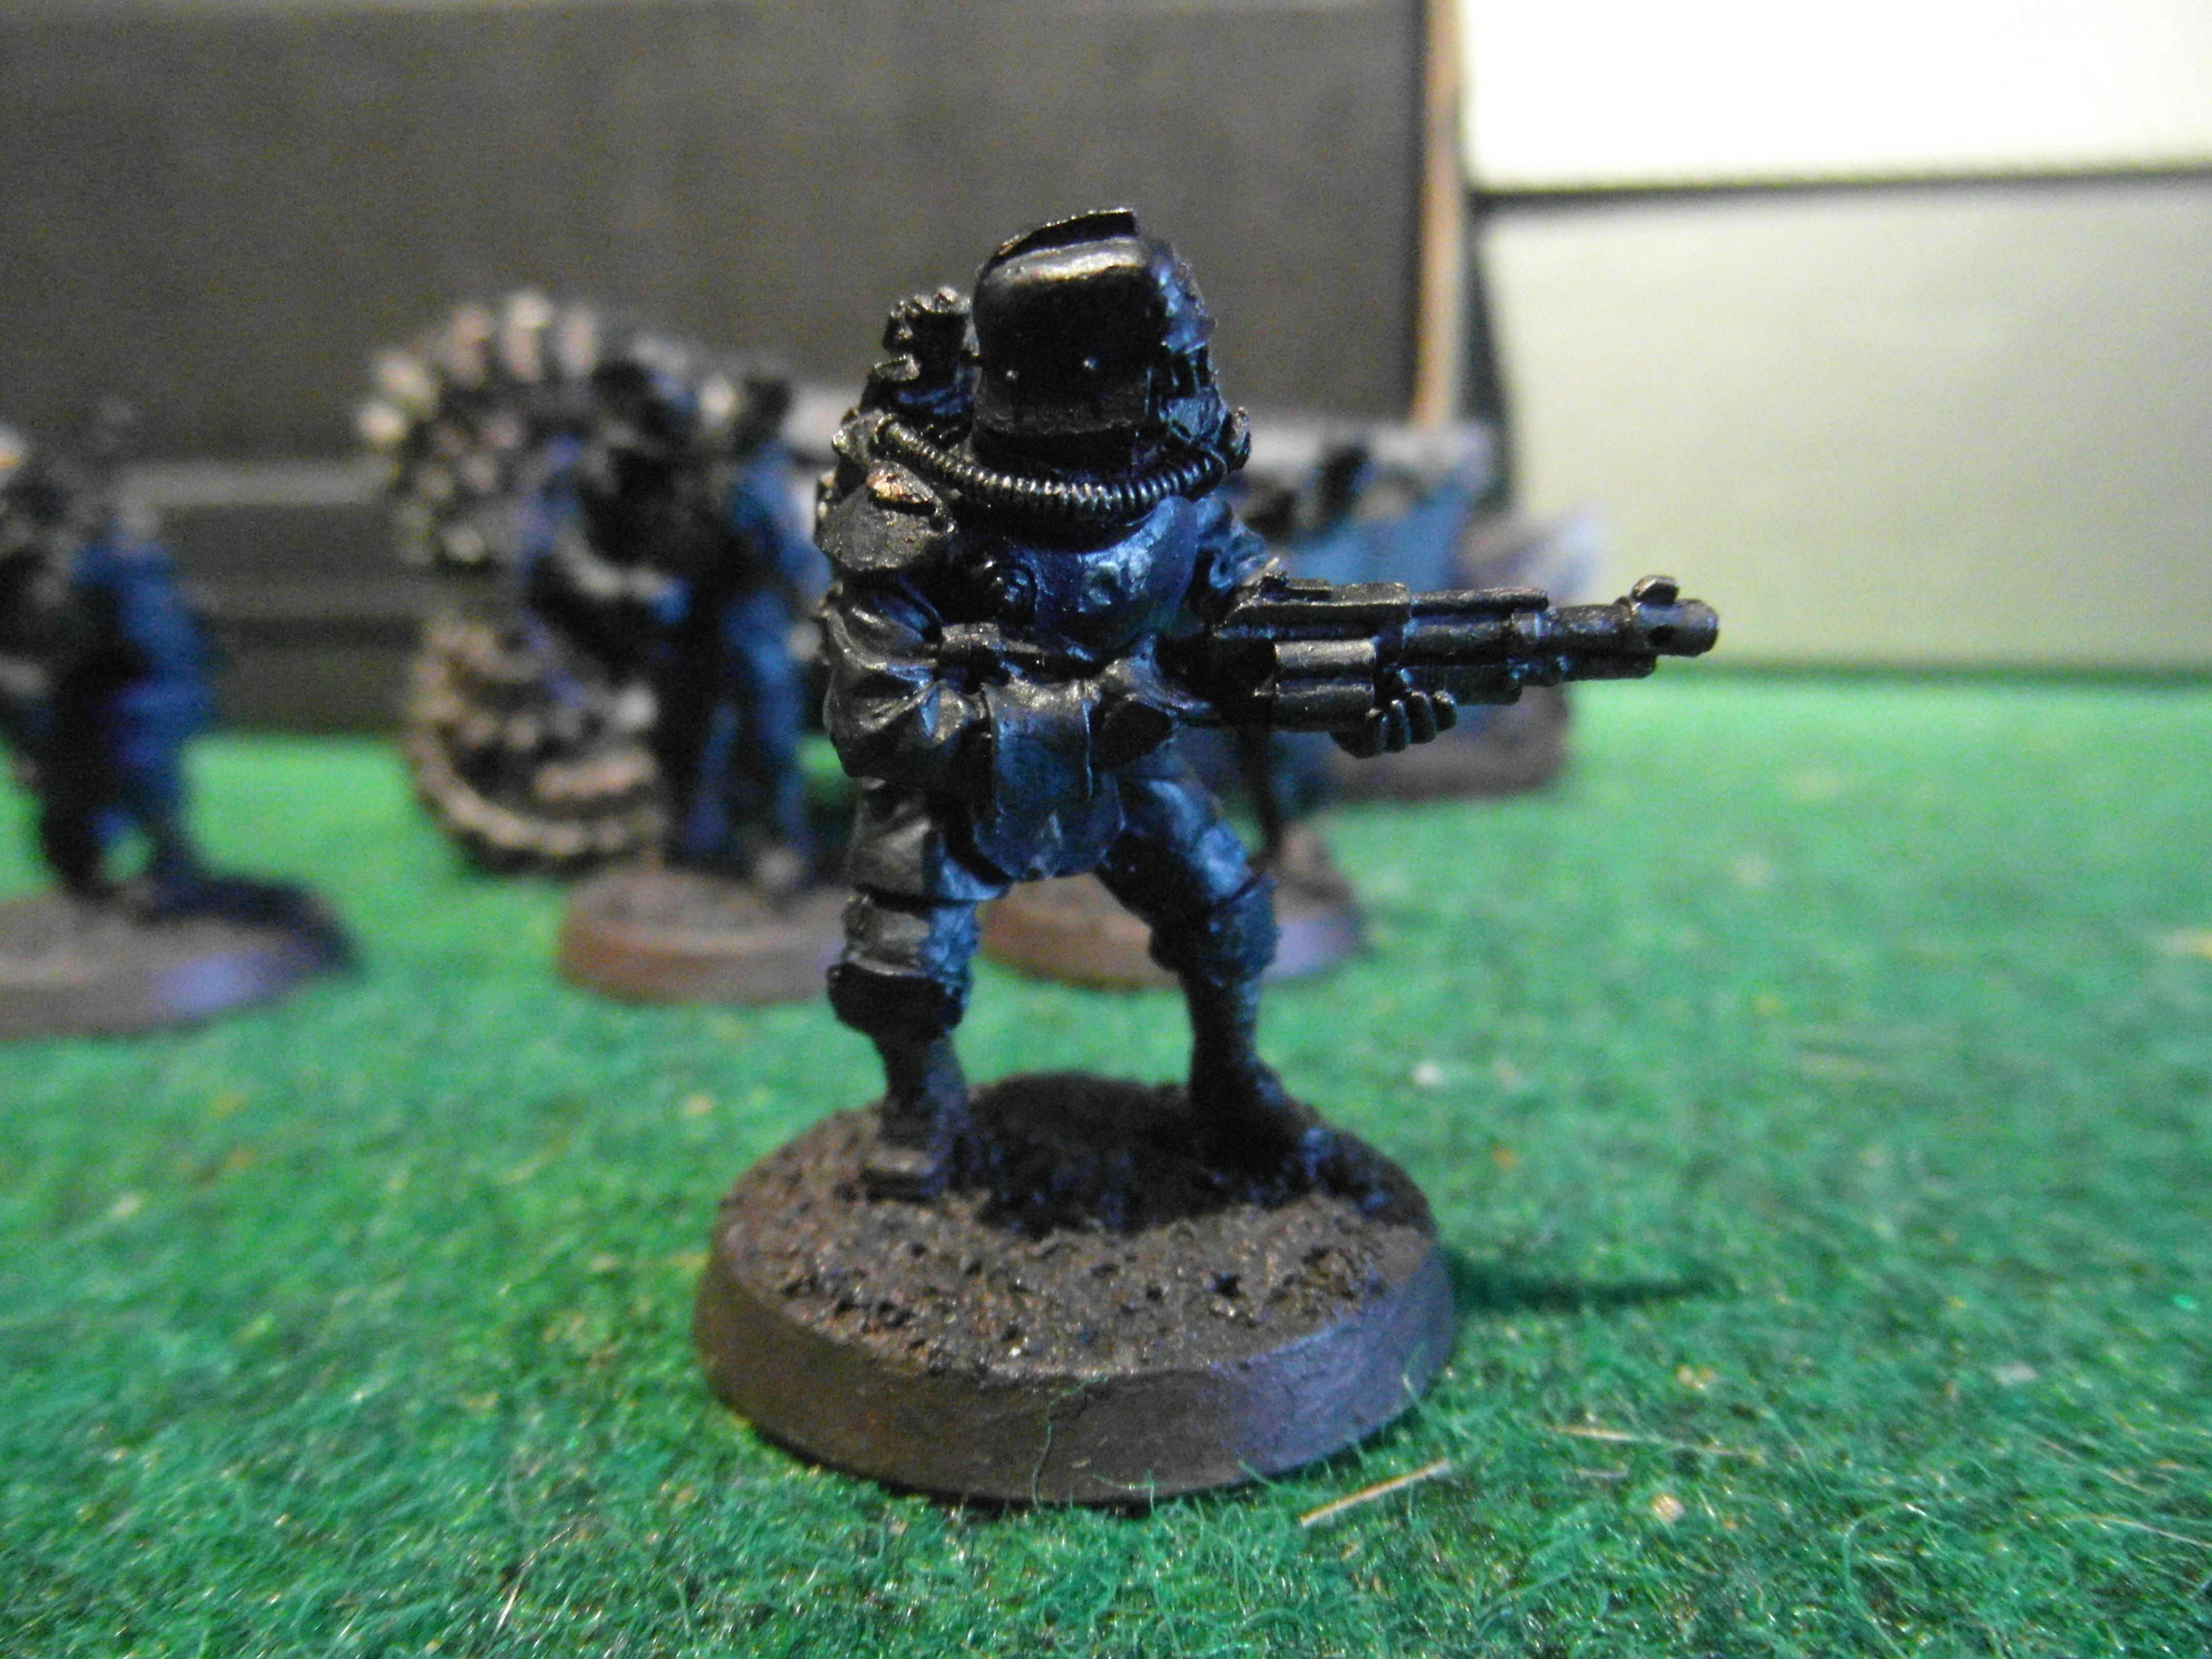 143rd, Death, Death Korps of Krieg, Forge World, Imperial Guard, Korps, Of